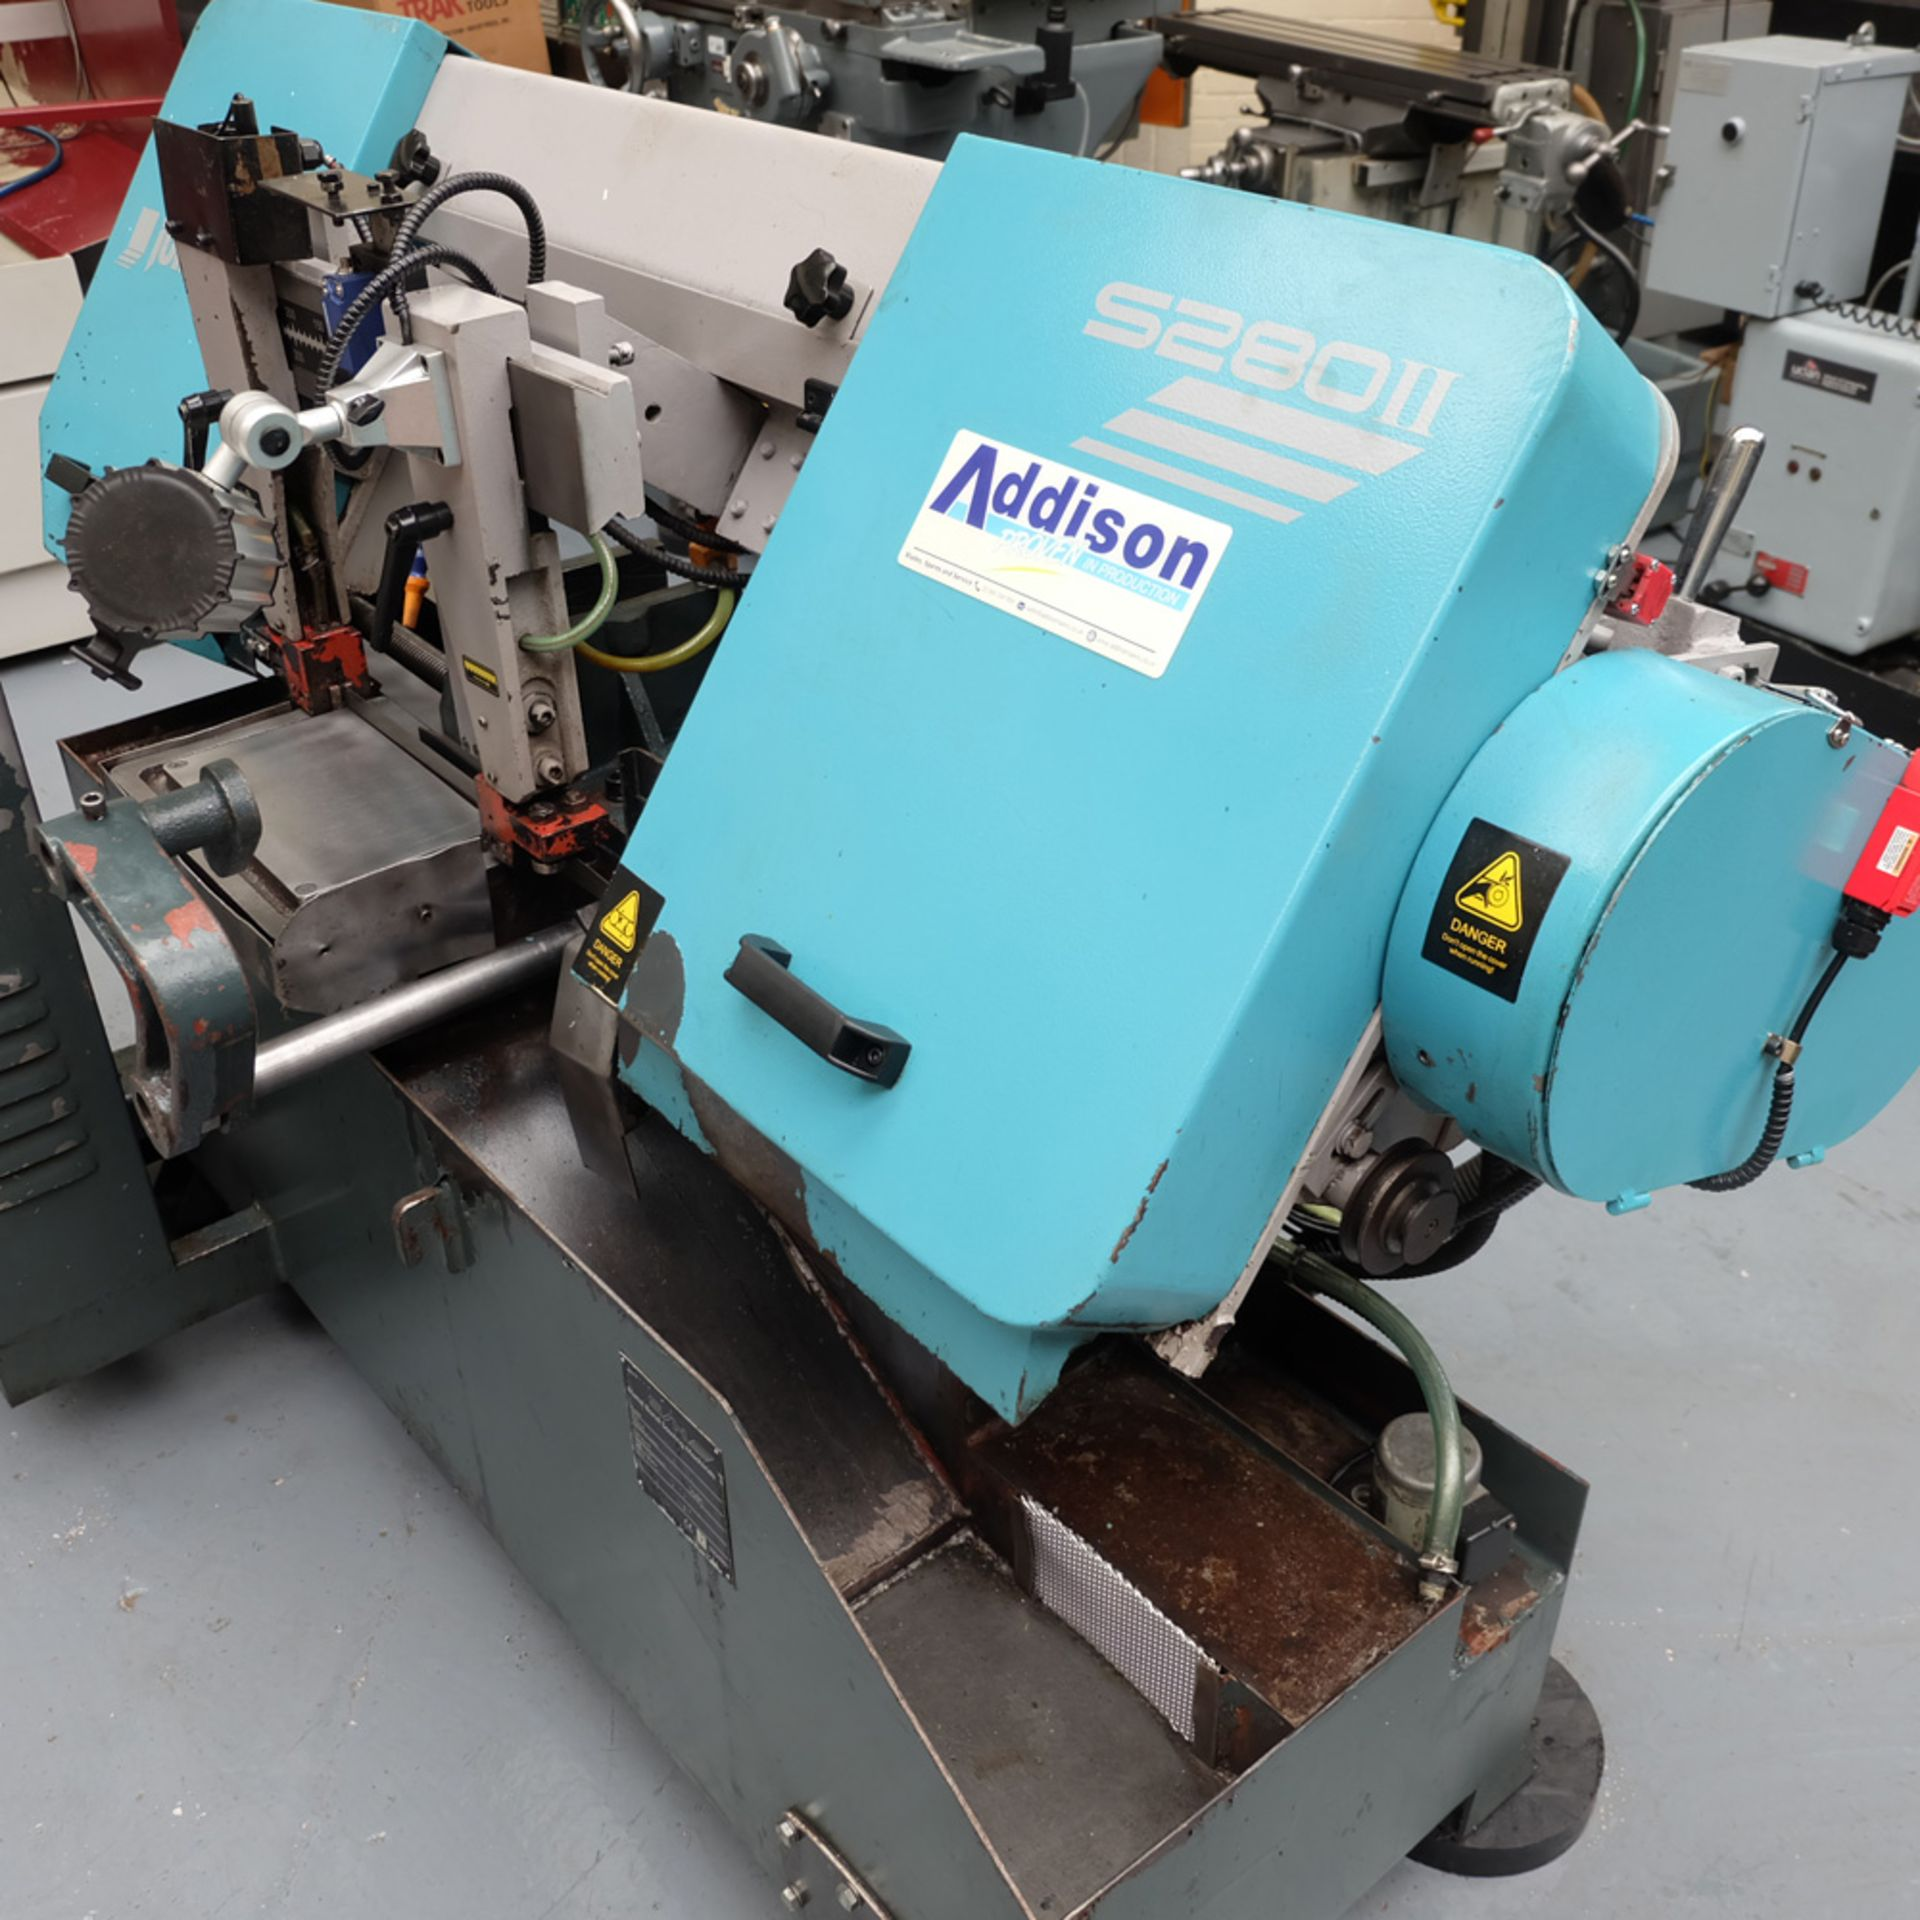 Julihuang By Addison Model S280 MKII Semi-Auto Horizontal Bandsaw. - Image 6 of 9